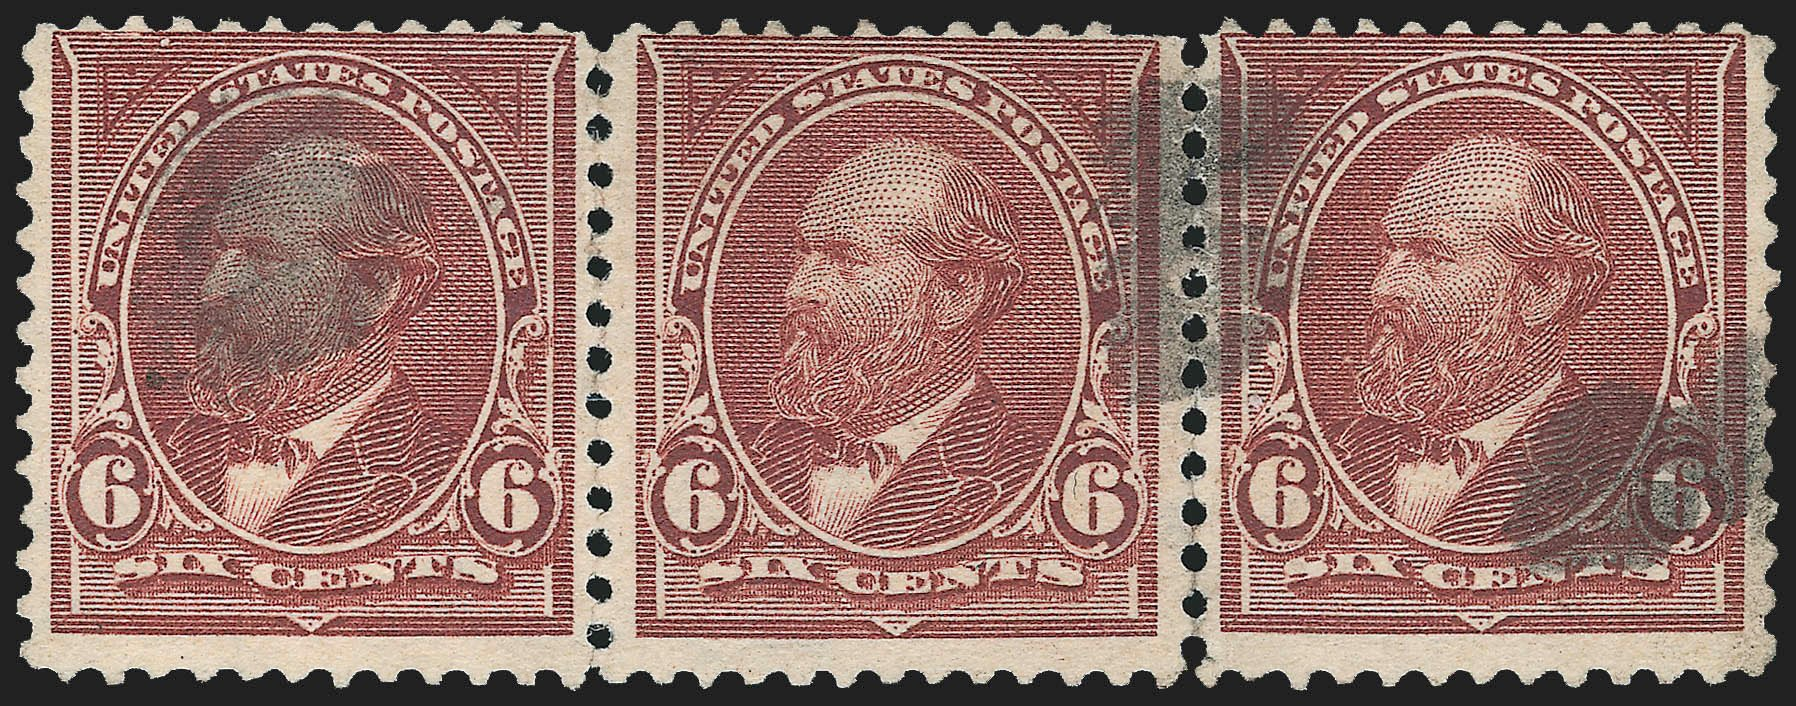 US Stamps Price Scott Catalogue 271: 6c 1895 Garfield. Robert Siegel Auction Galleries, Jul 2015, Sale 1107, Lot 358